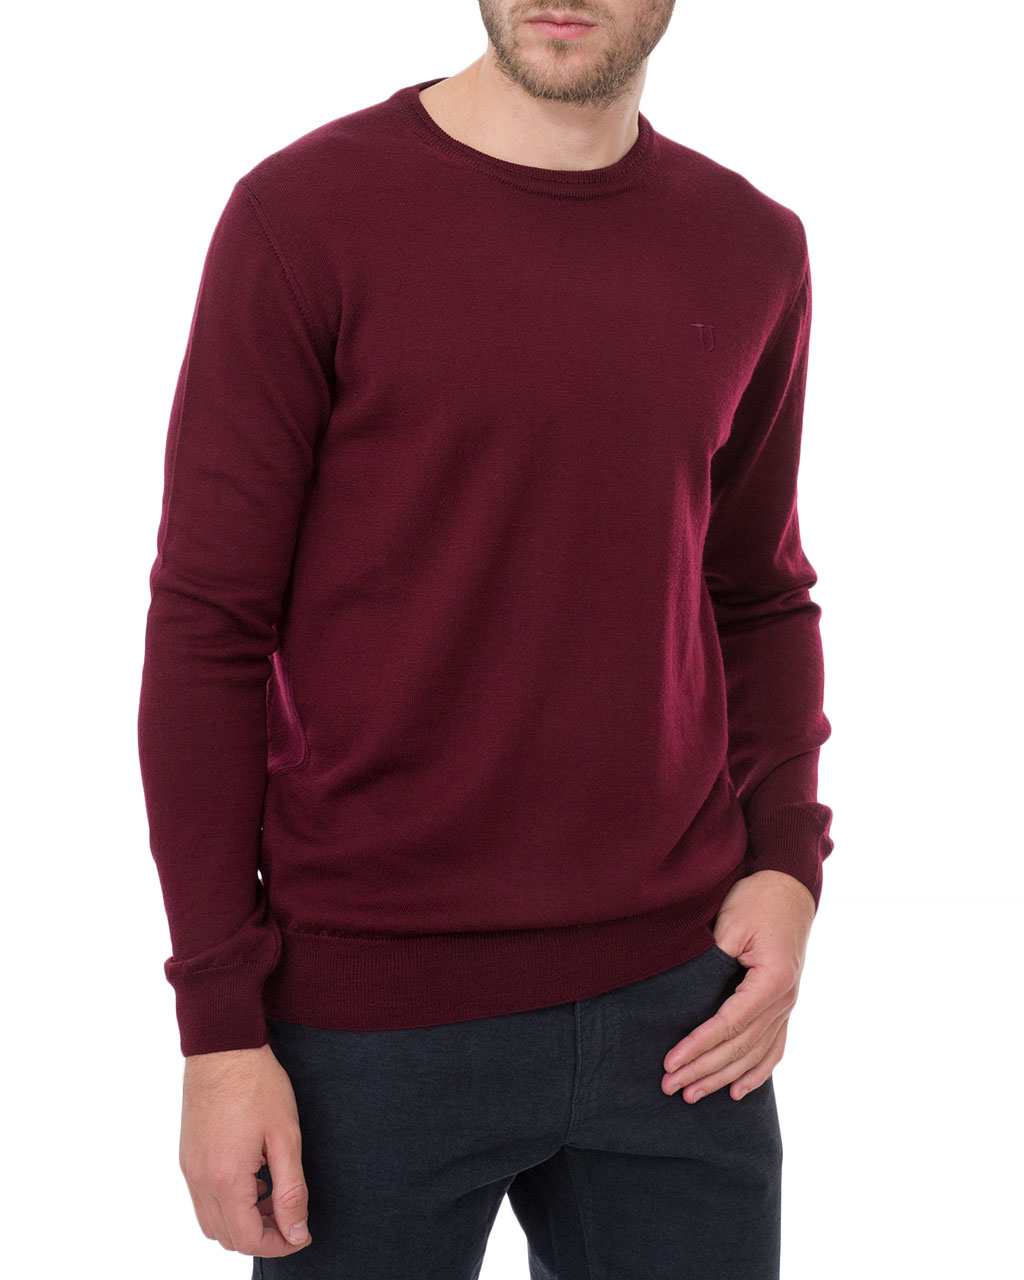 Men's jumper 52M00257-OF000422-R145/19-20 (4)